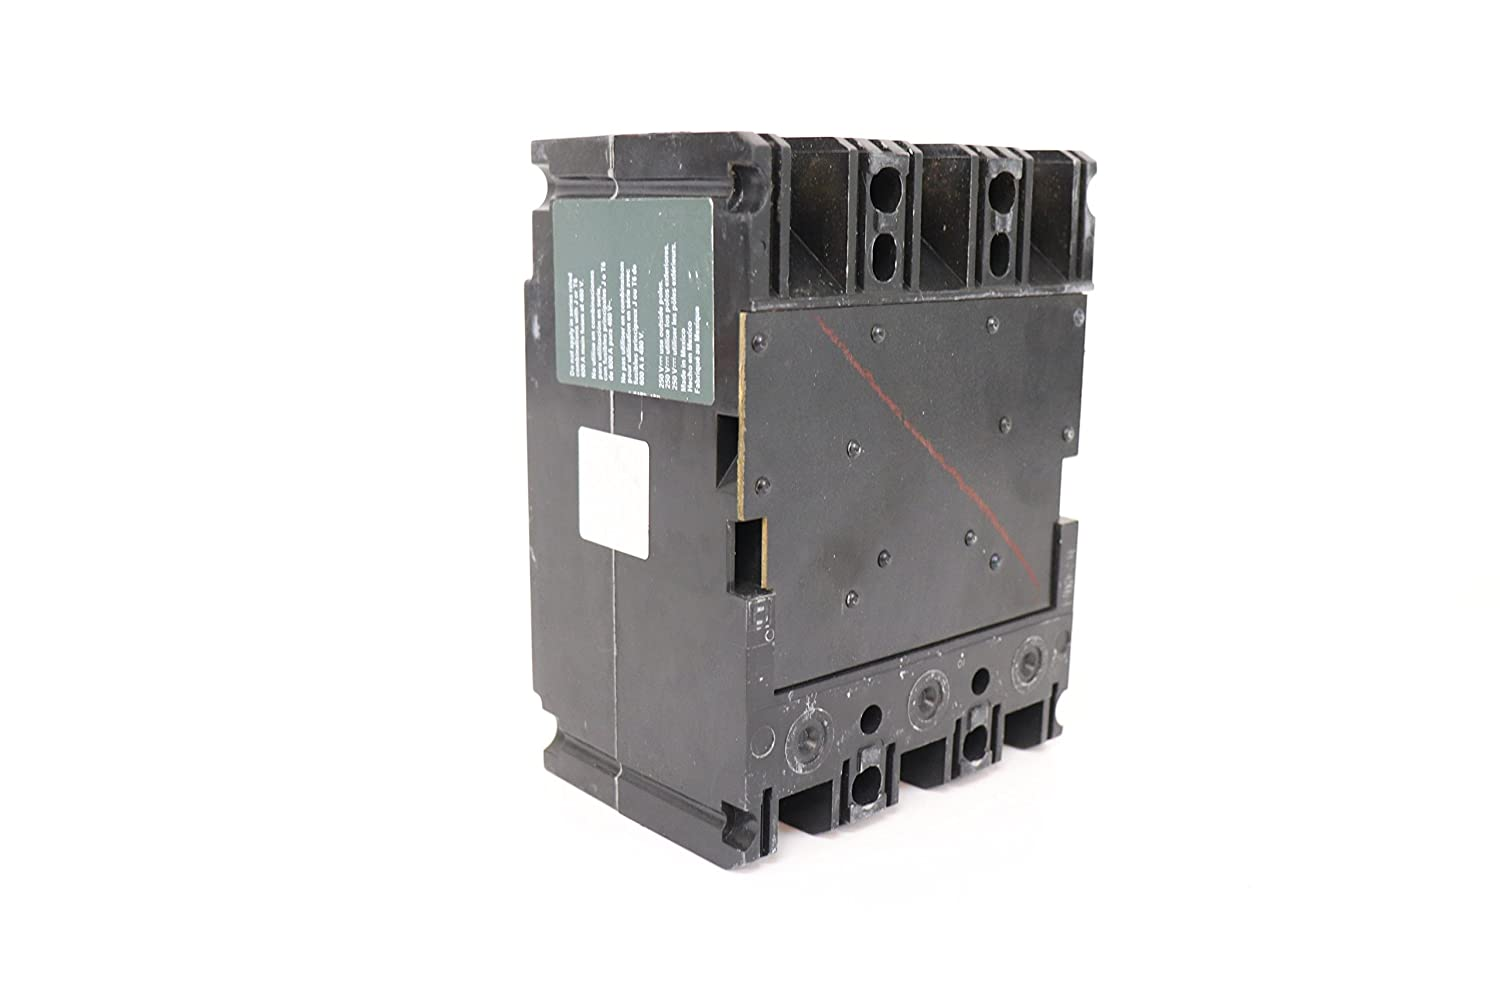 SCHNEIDER ELECTRIC FAL34100 Molded Case Circuit Breaker 480-Volt 100-Amp  480V 100A - Thermal Magnetic Circuit Breakers - Amazon.com